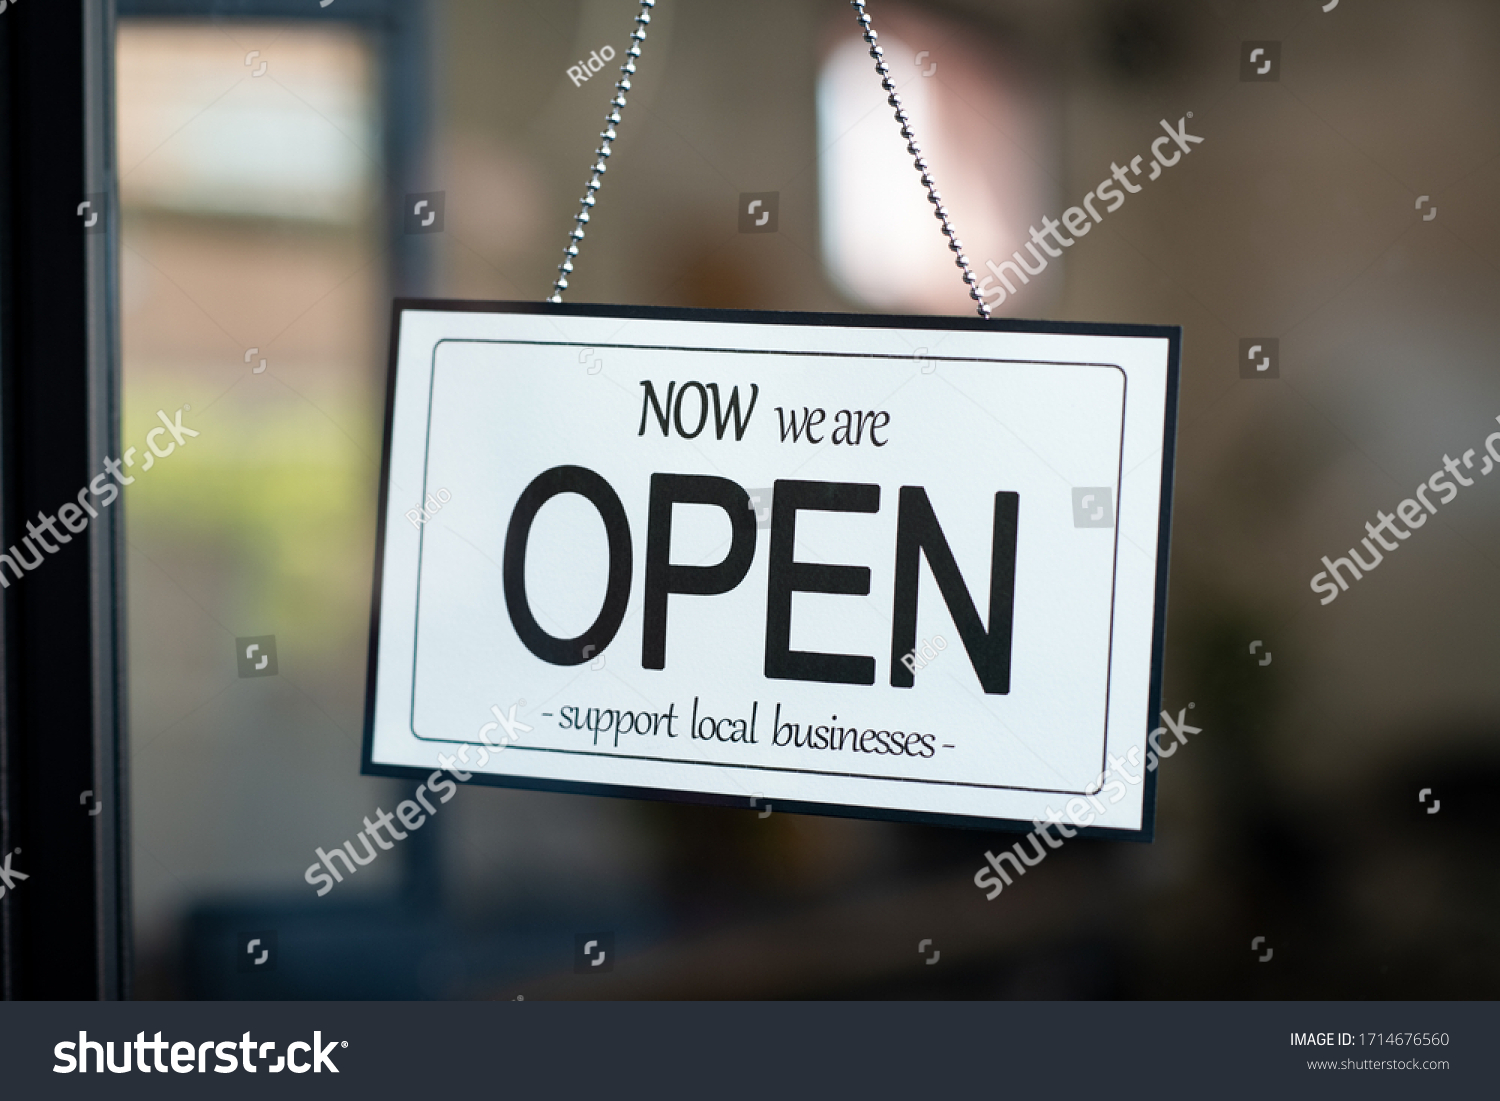 Reopening of a small business activity after the covid-19 emergency, ended the lockdown and quarantine. A business sign that says now we are open support local businesses hang on door at entrance. #1714676560